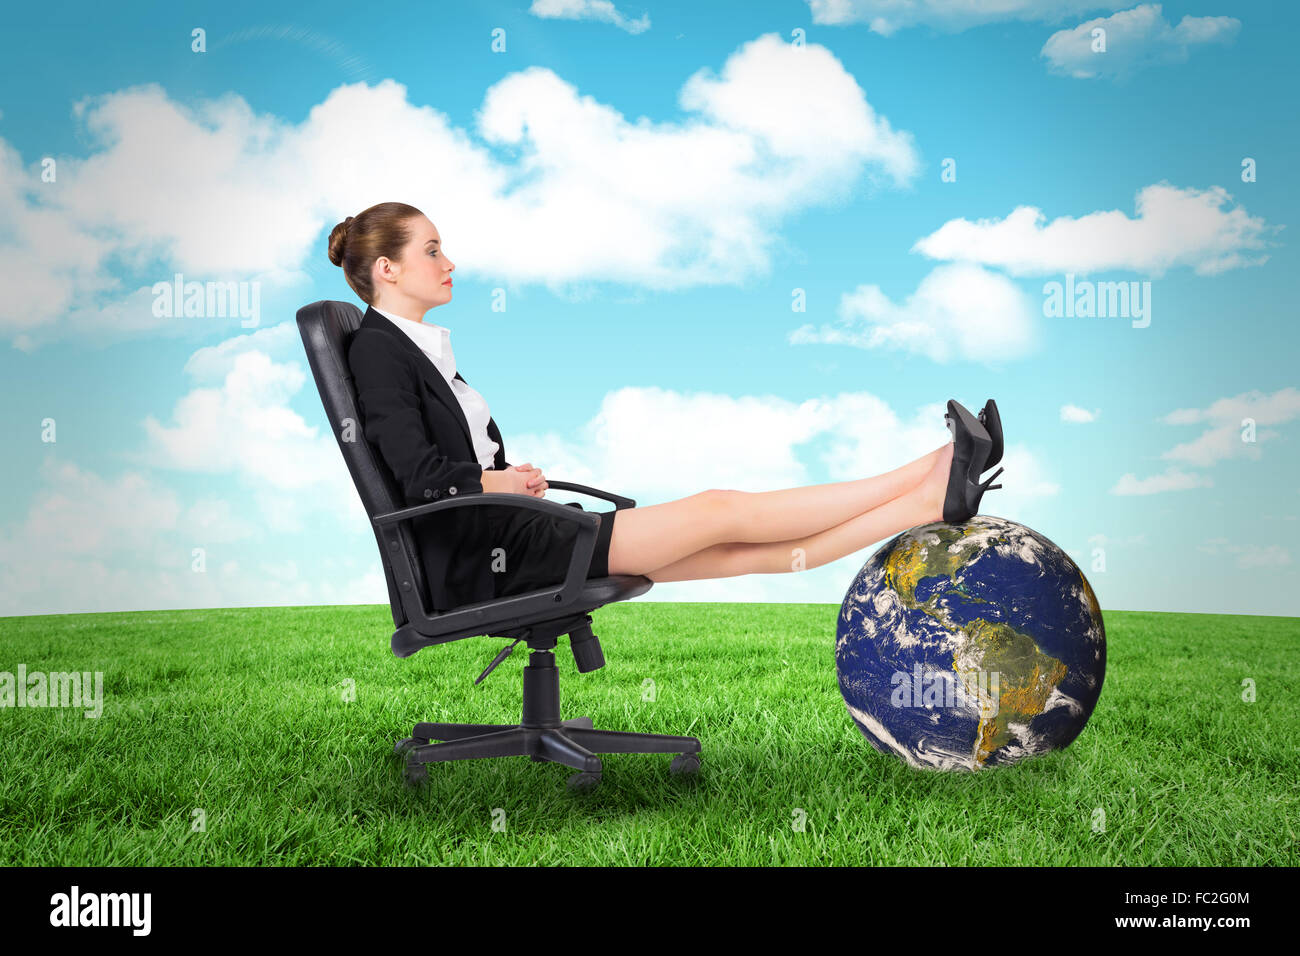 Excellent Composite Image Of Businesswoman Sitting On Swivel Chair Pdpeps Interior Chair Design Pdpepsorg